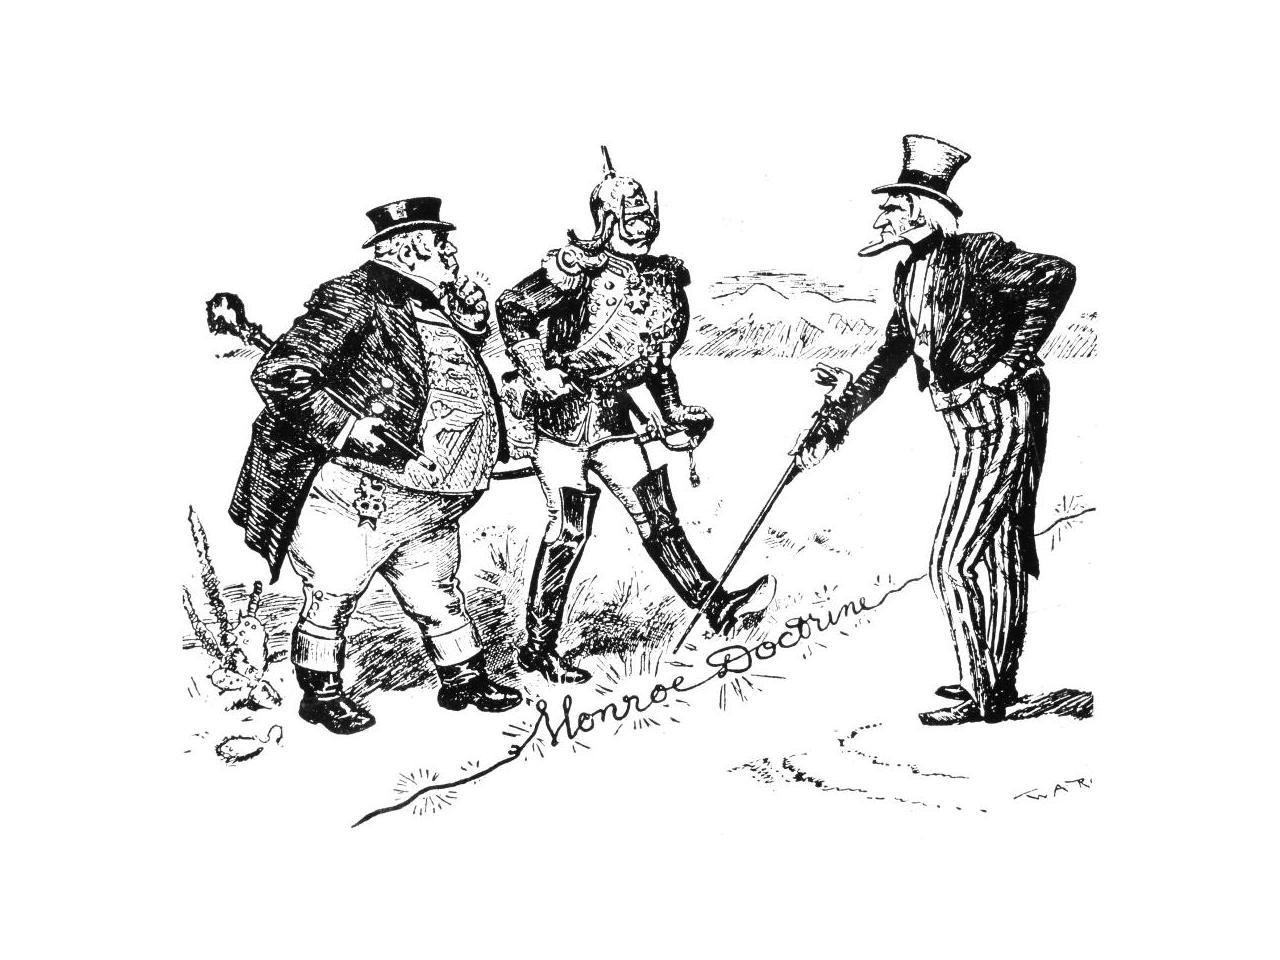 A 1902 Cartoon On German And British Claims Against Venezuela And President Theodore Roosevelt's Intentions To Resist (W.A. Rogers)